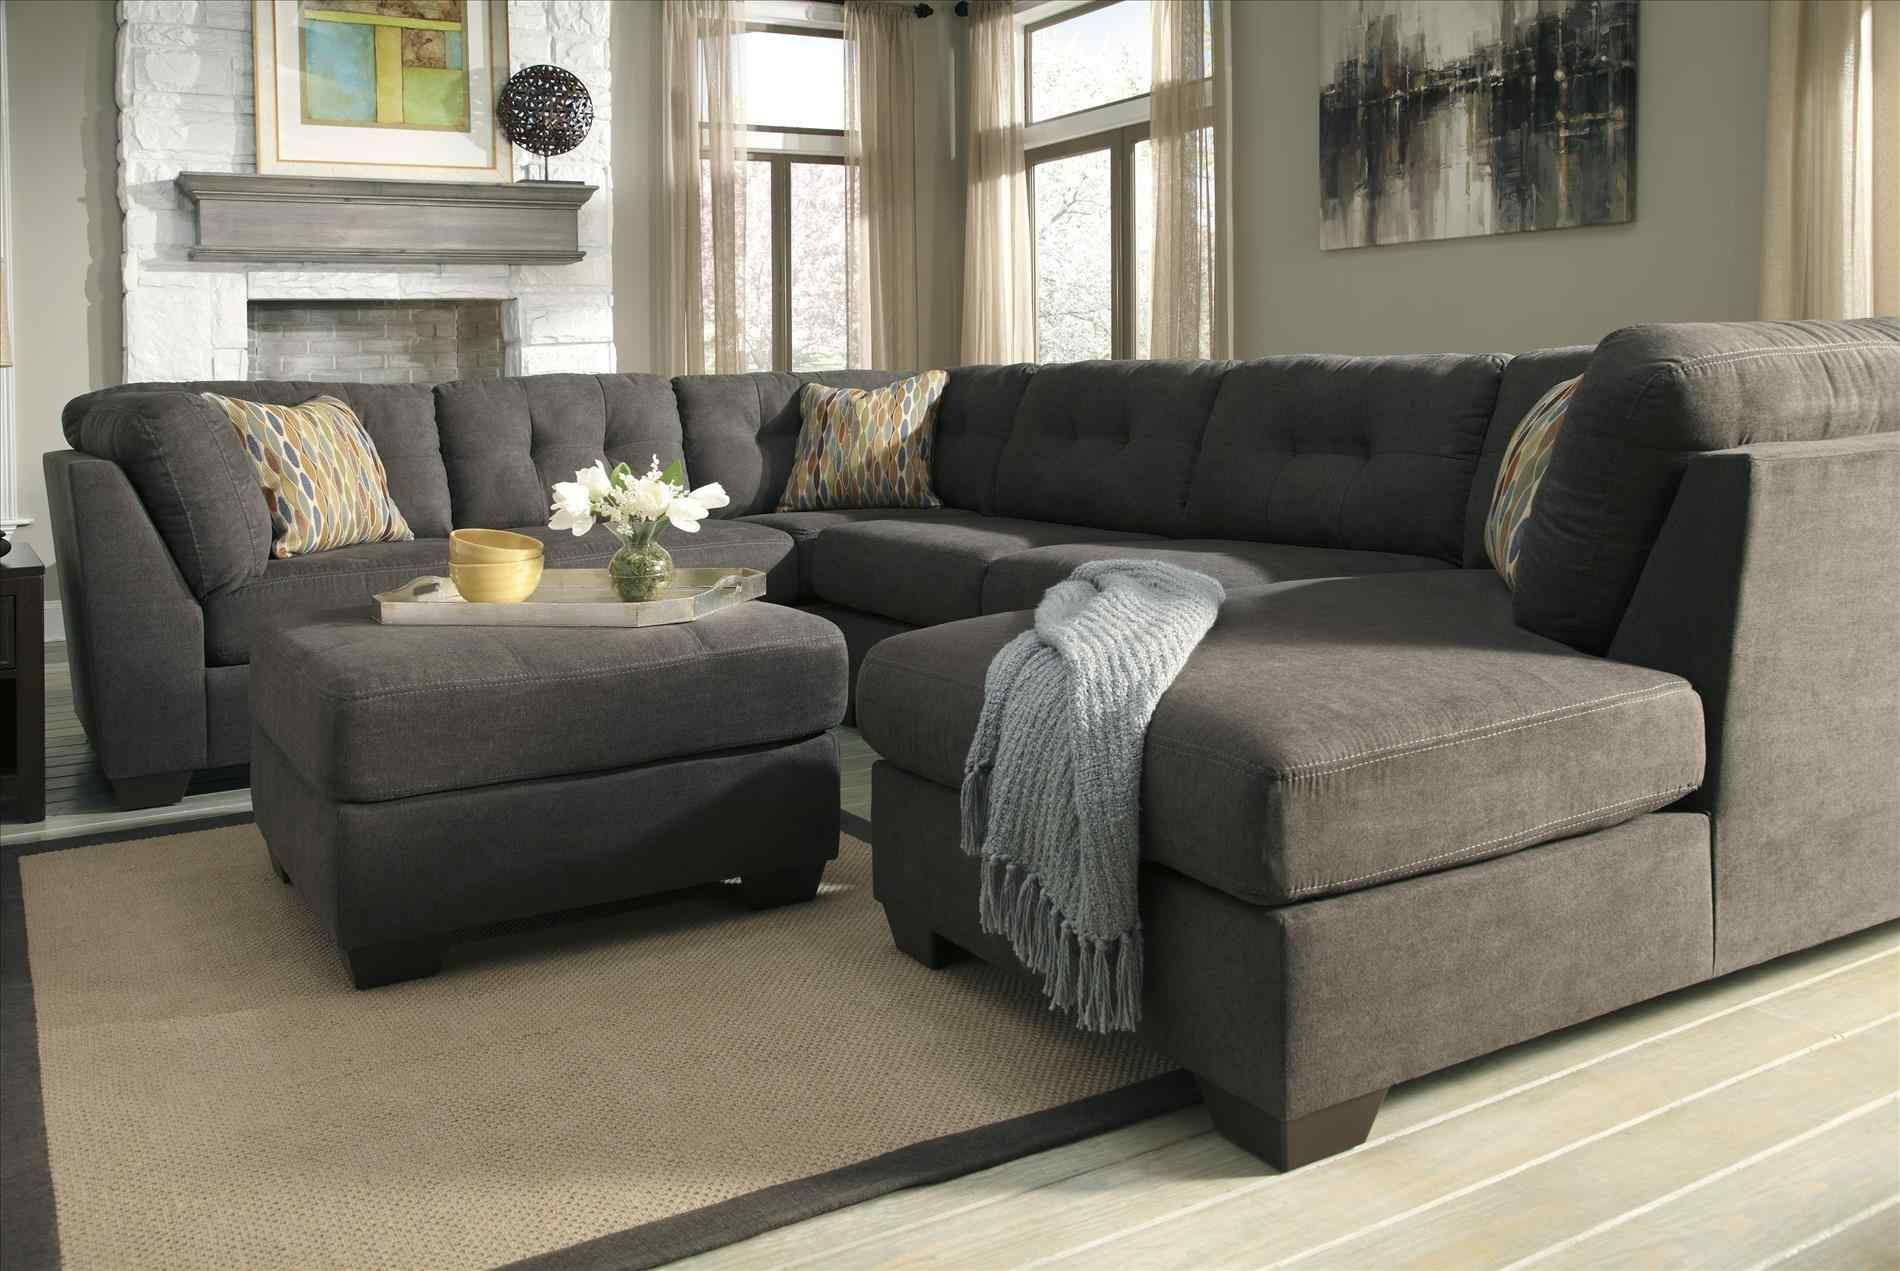 Merveilleux Living Bauhaus Sectional Sofa Microfiber Room Exciting Denim Design For  Cozy Throws Your S Cozy Bauhaus Sectional Sofa Microfiber Throws For